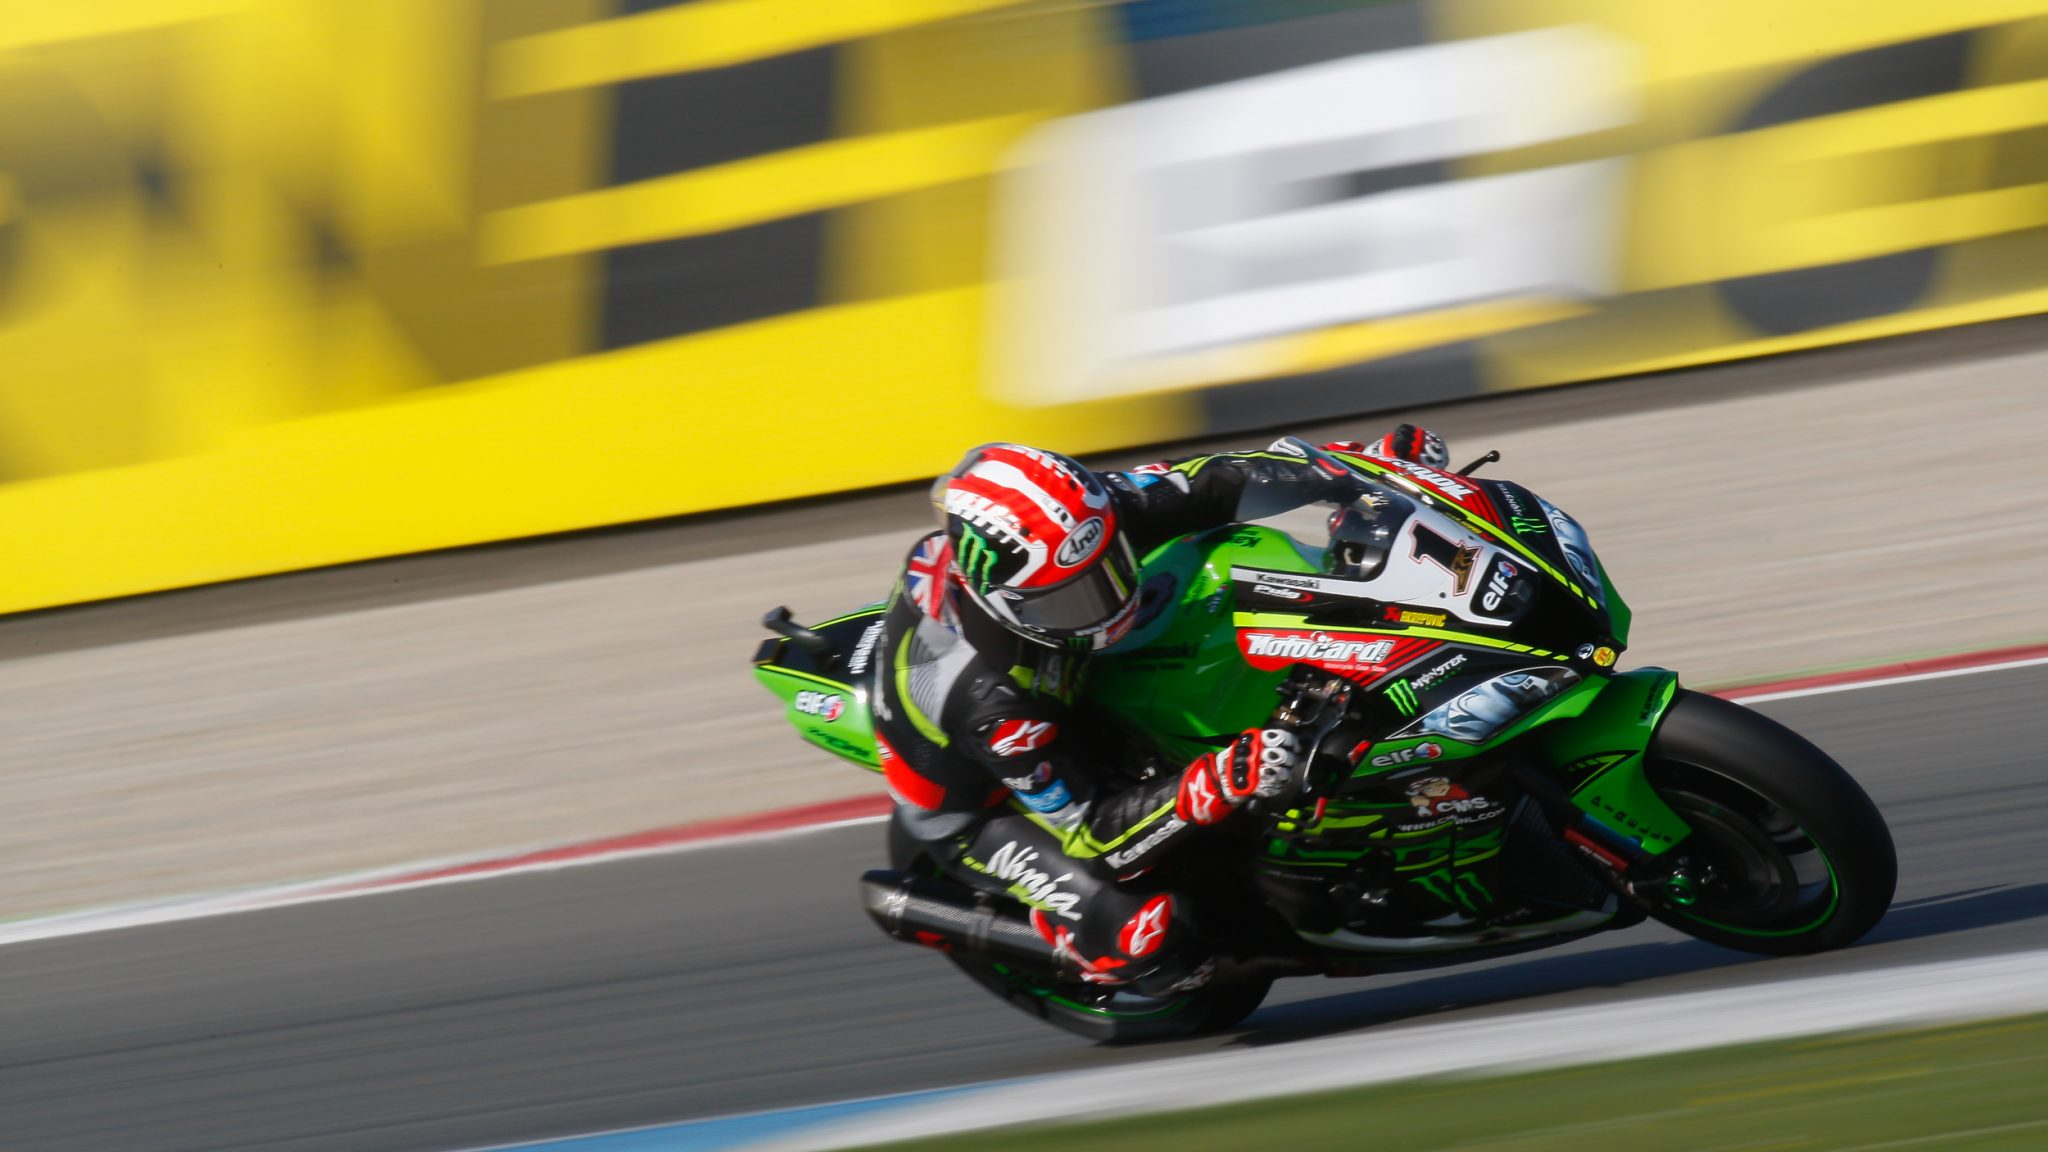 SBK Assen – Jonathan Rea wins Race 1 and increases championship lead